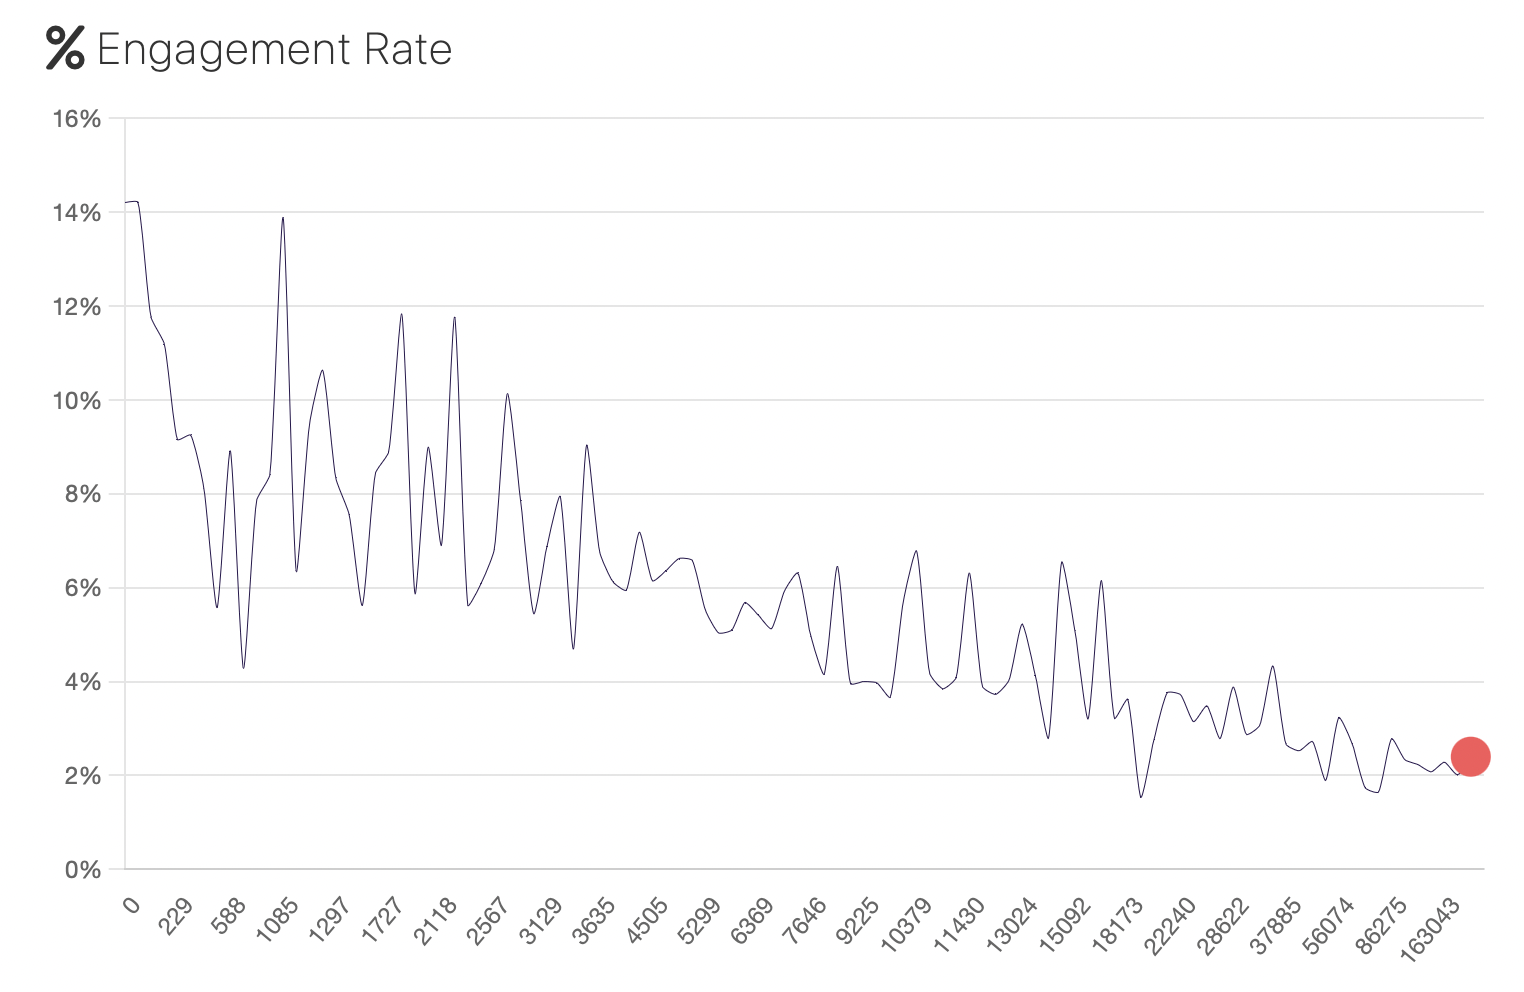 Engagement rate graph depicting engagement percentage based on follower numbers